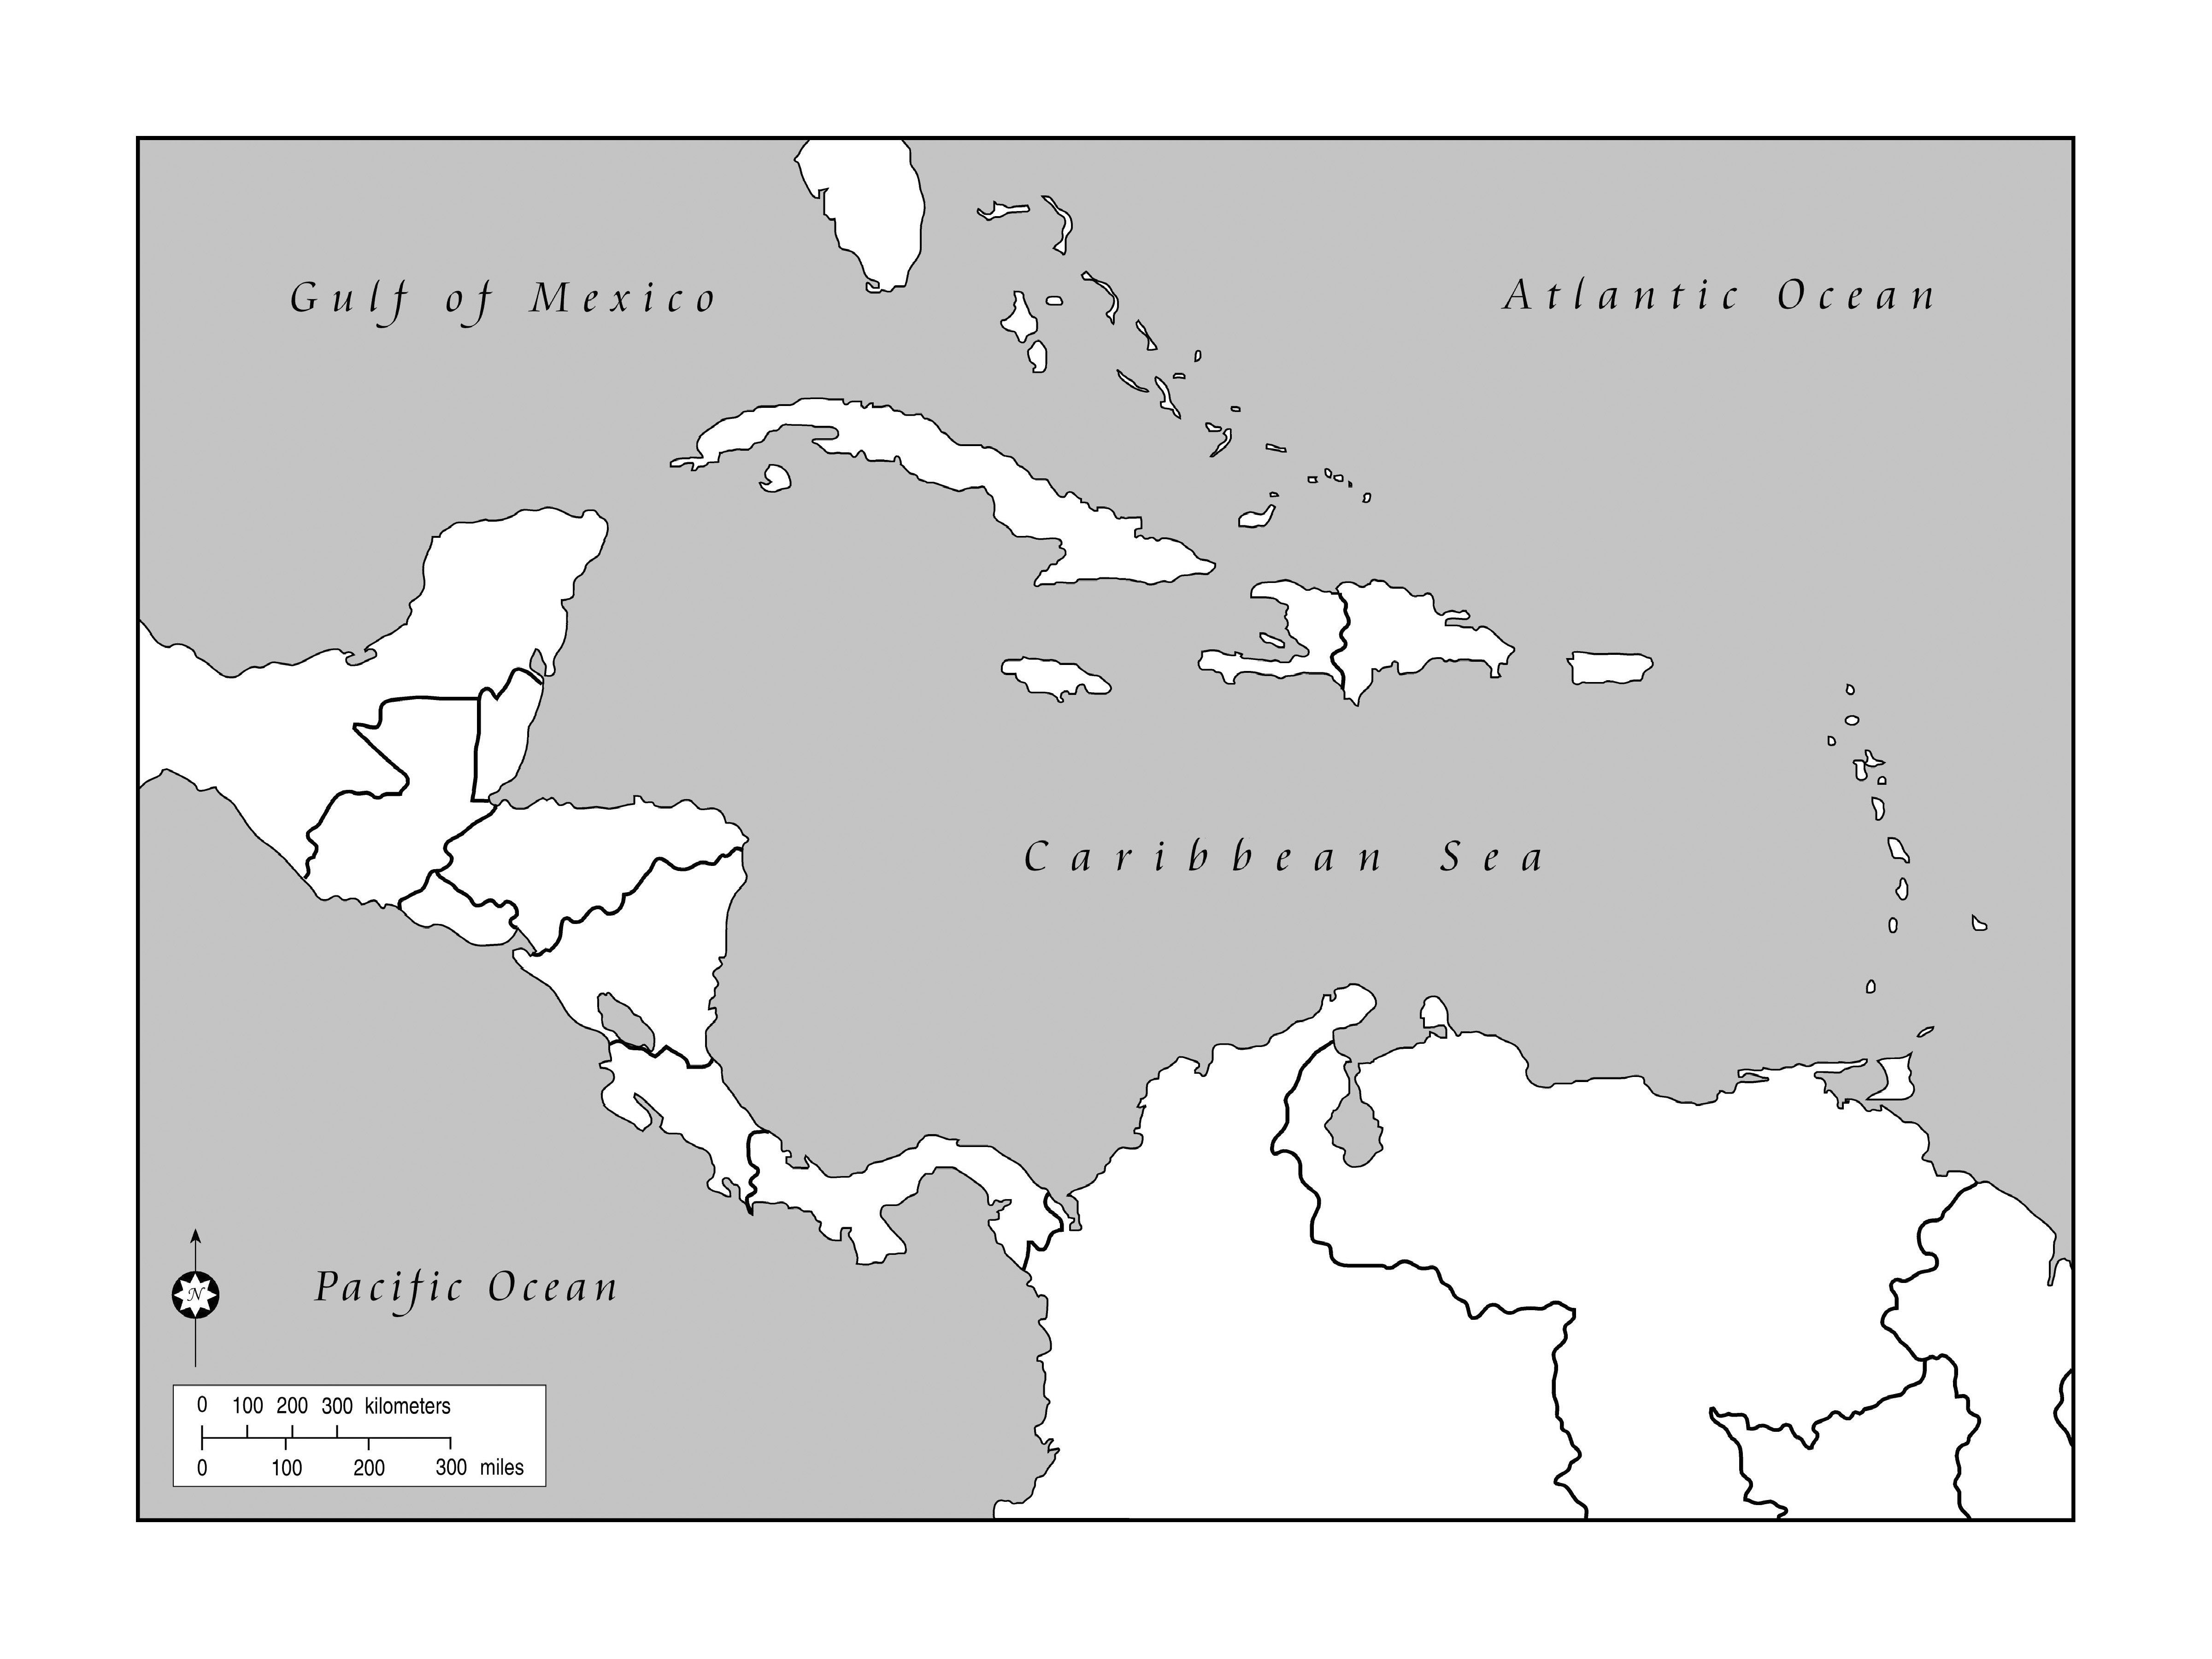 blank map of caribbean and central america Caribbean And Central America Outline Jpg 4800 3600 Blank blank map of caribbean and central america